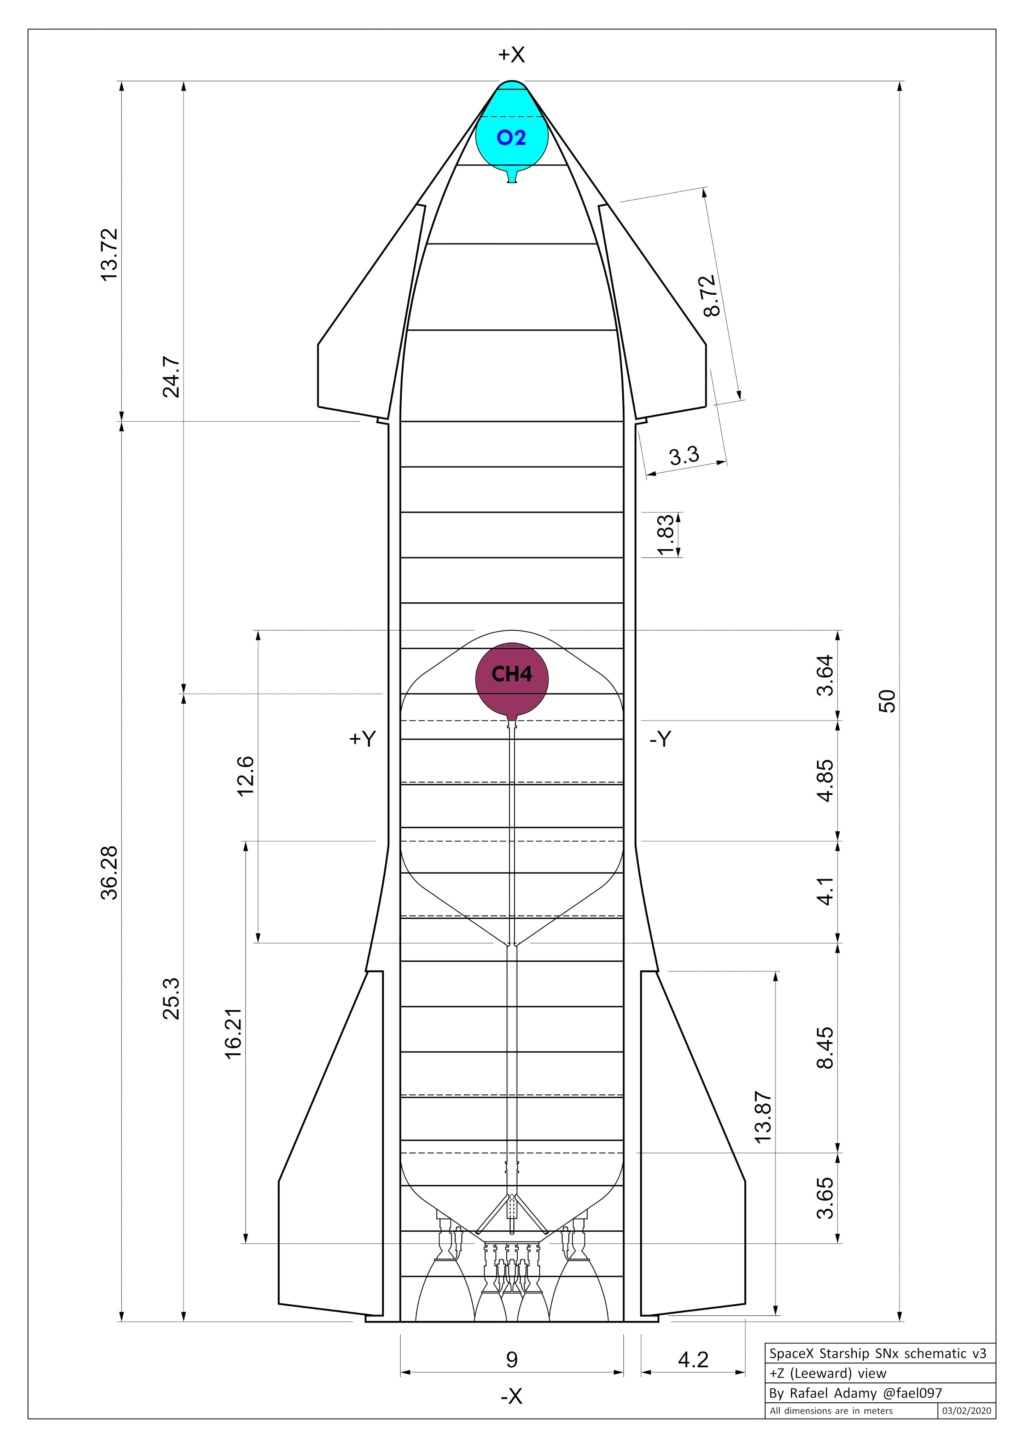 [SpaceX] Avenir, perspectives et opinions - Page 9 Esith710